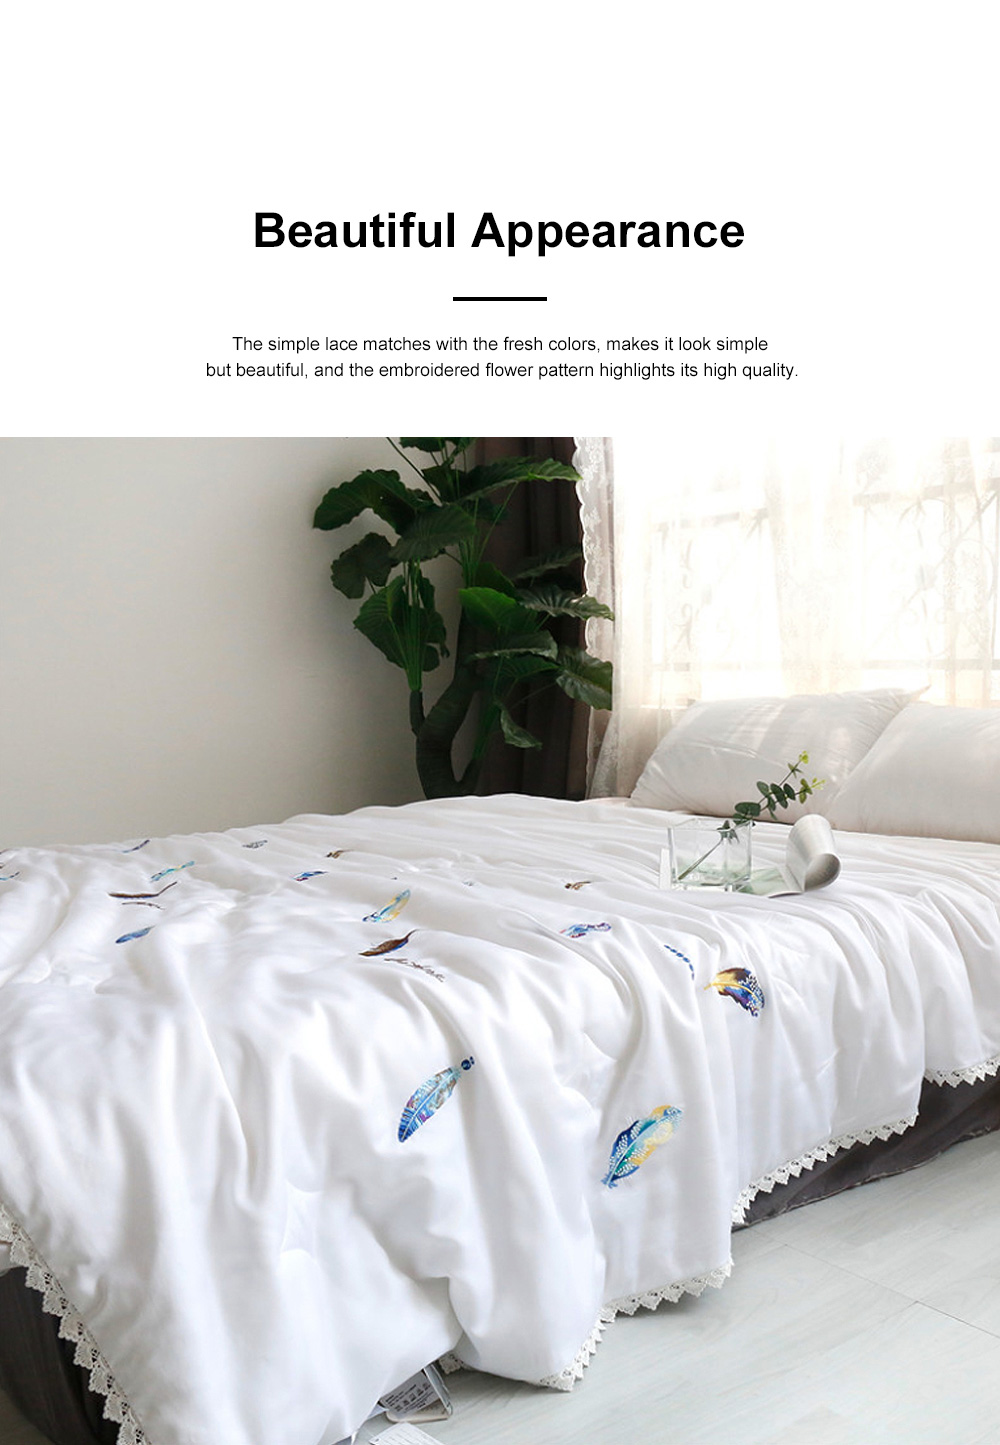 Embroidered Thin Double Summer Quilt Size High Quality Tencel Material Air Conditioning Cool Quilt 1